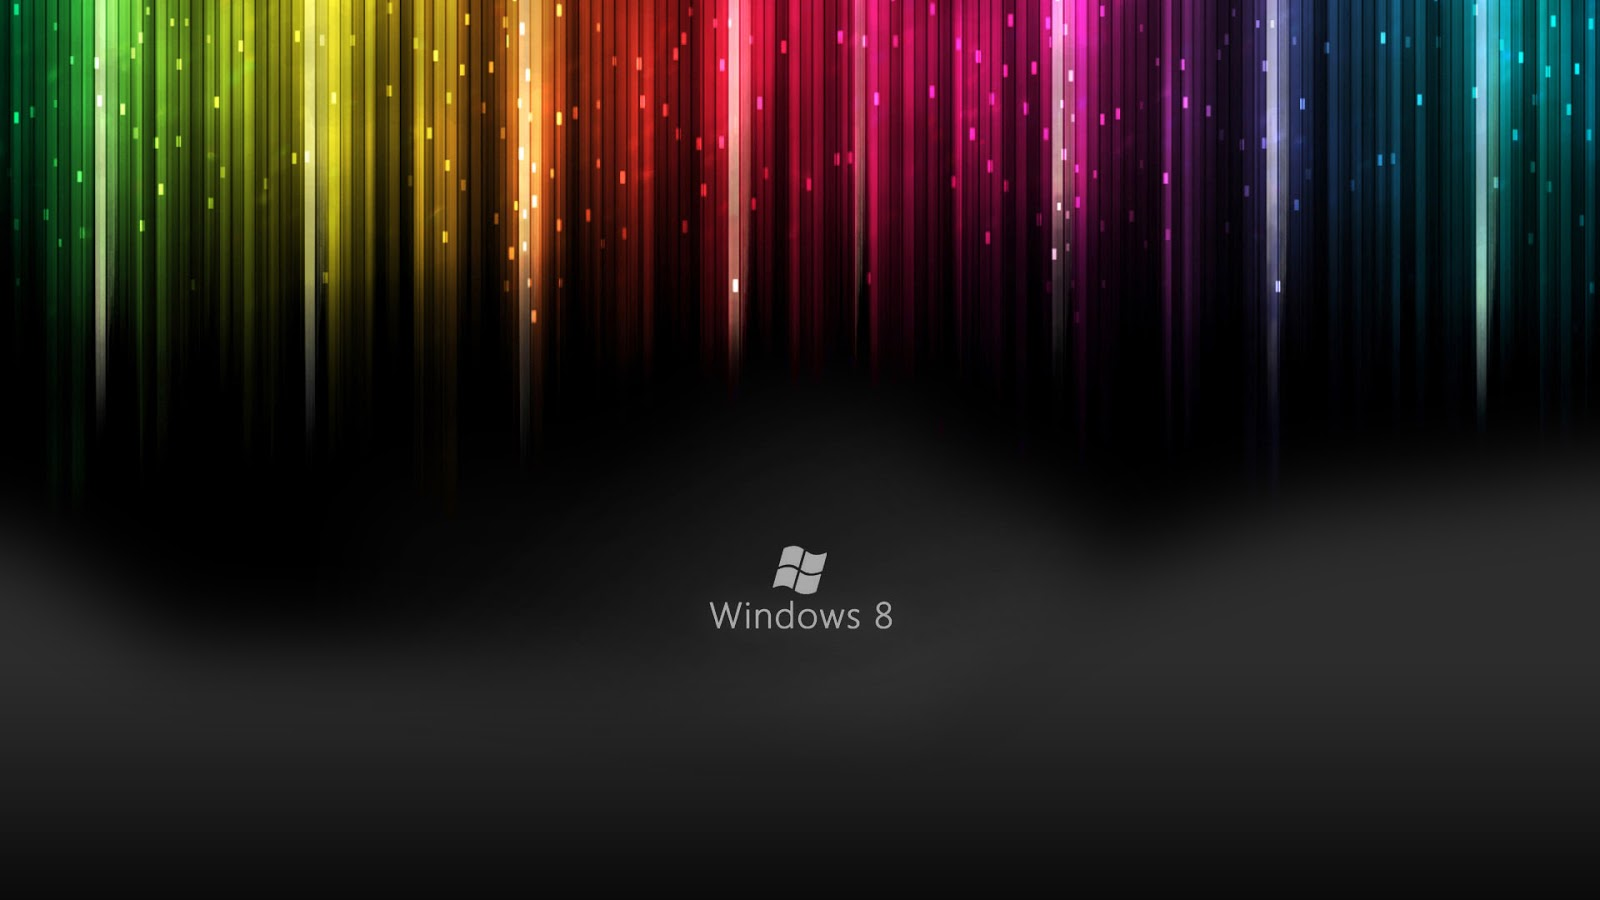 Gradient-Background-Windows-wallpaper-wpc5805497